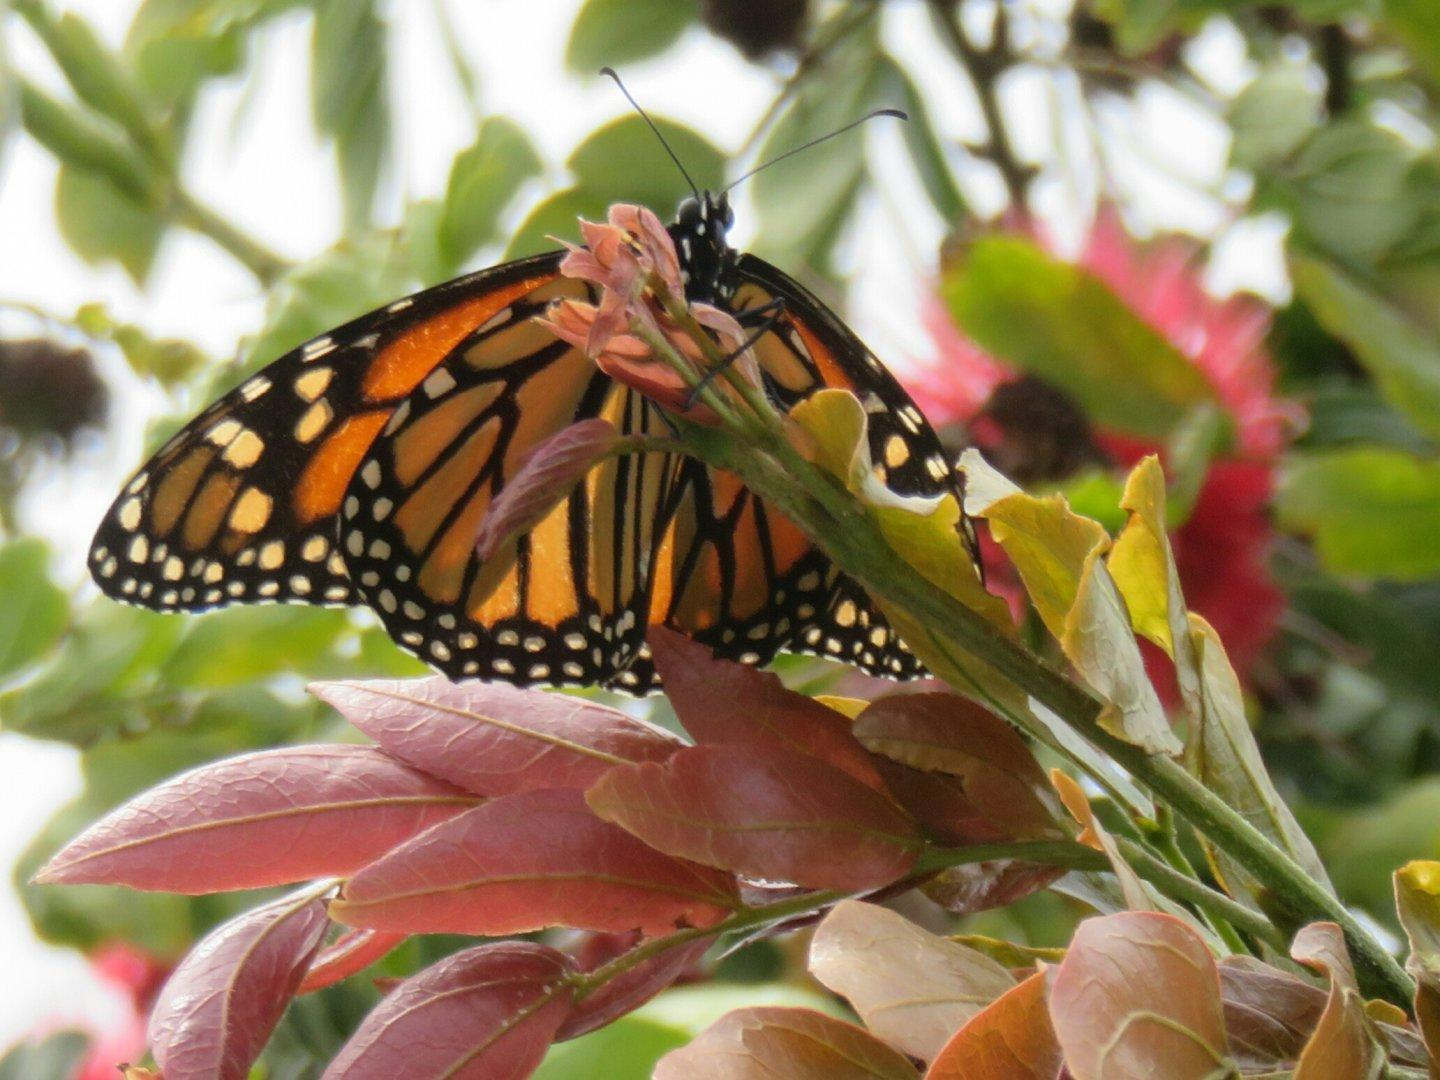 Spotted a #Monarch #butterfly today, and it actually landed and held still long enough for me to get a clear photo.